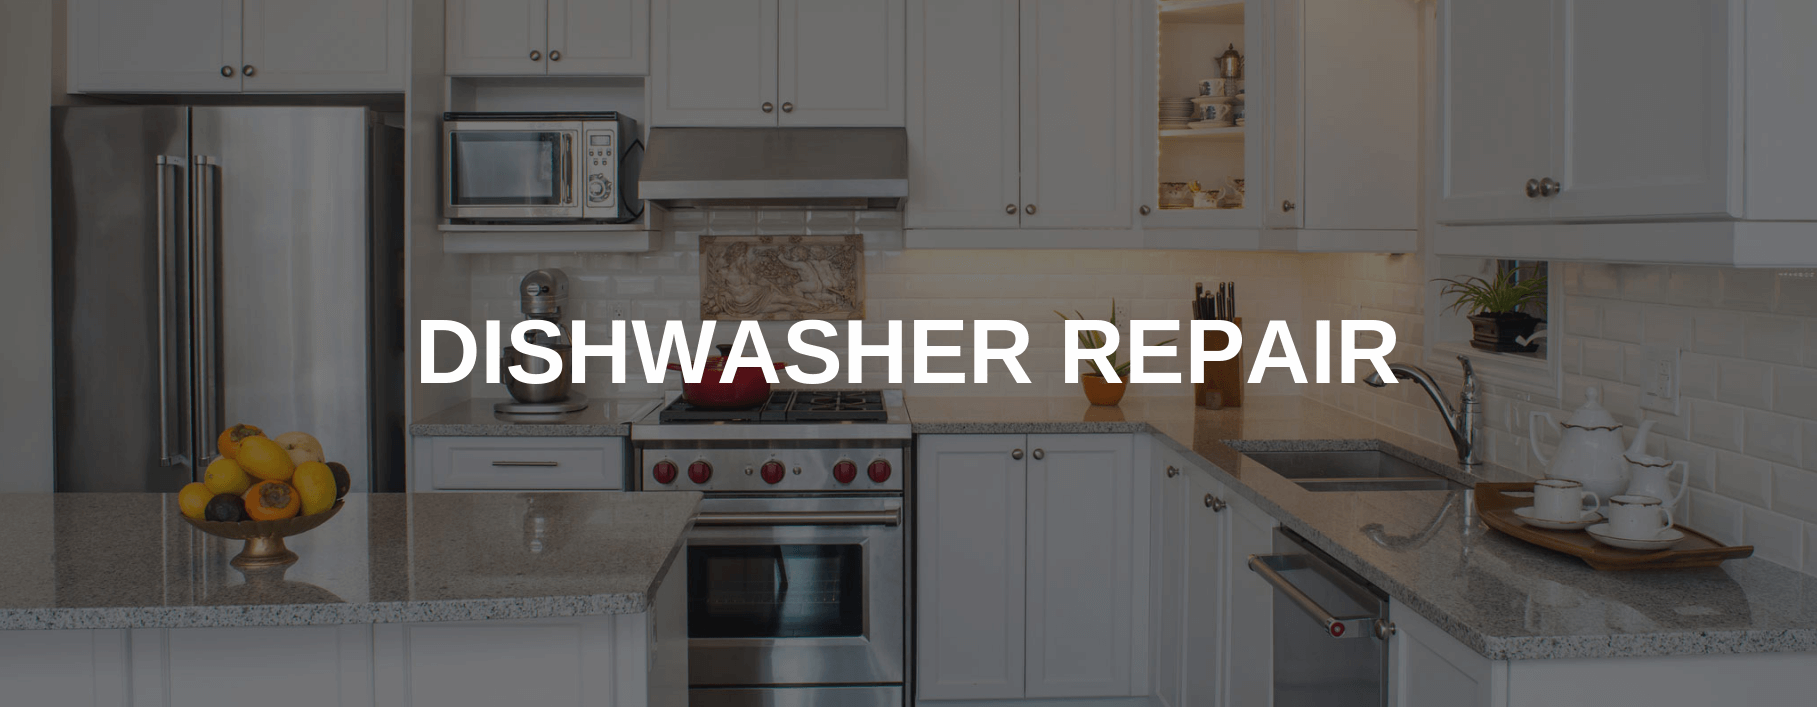 dishwasher repair enfield